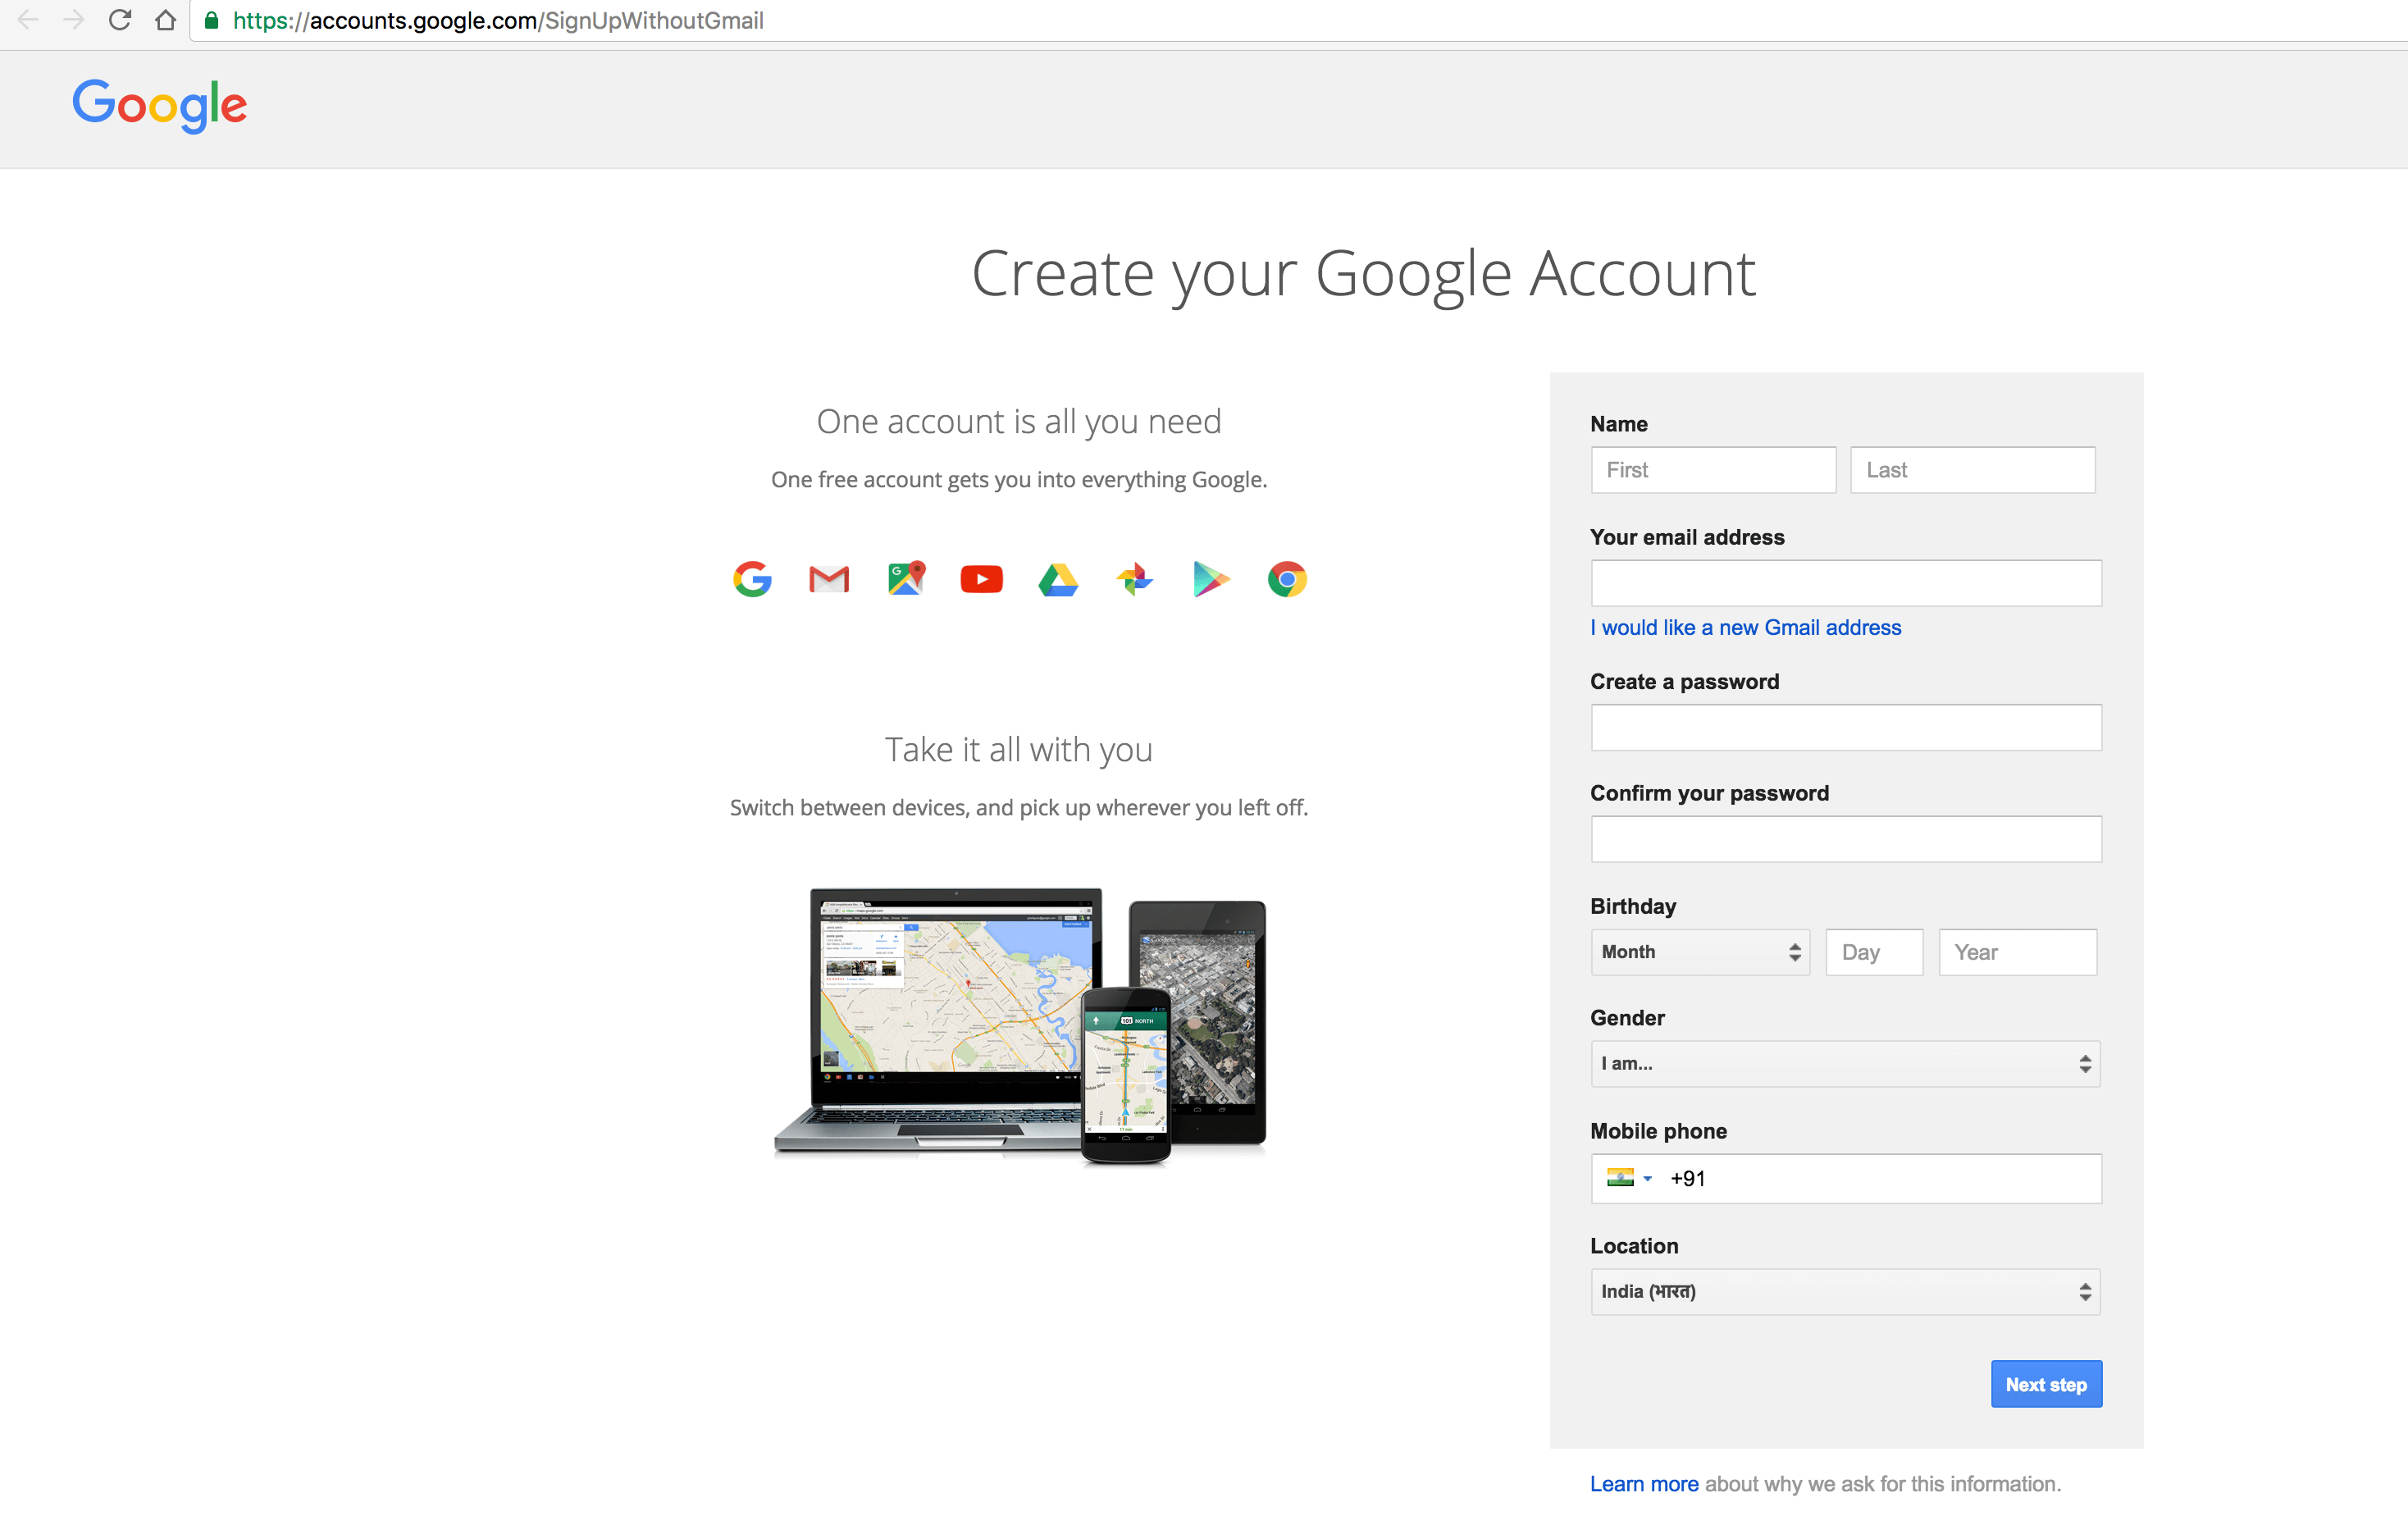 Signup without Gmail